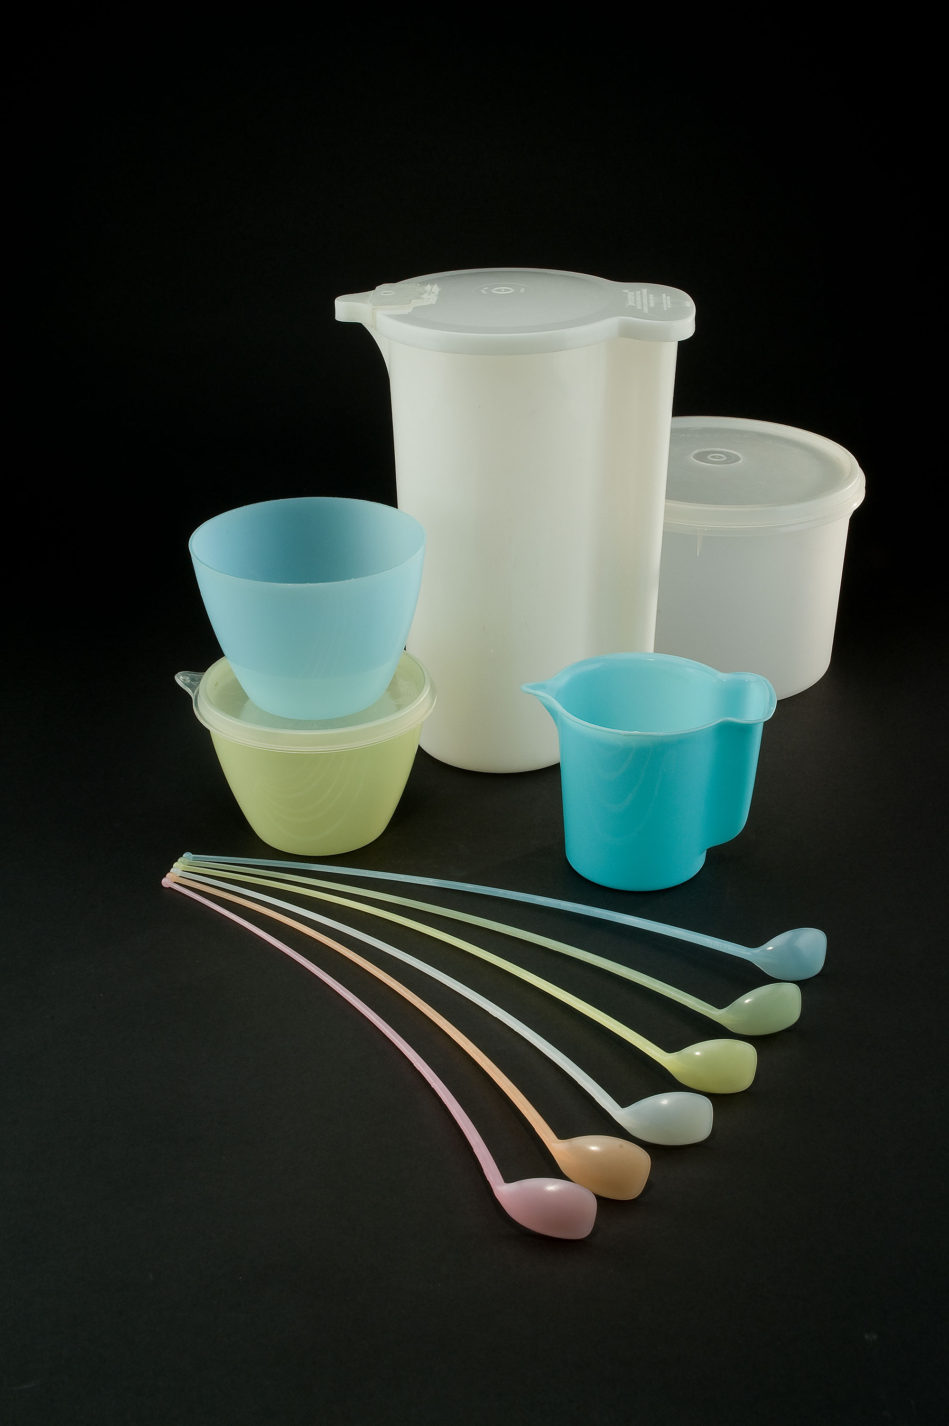 Set of translucent plastic bowls, pitchers, and spoons in different sizes and colors.